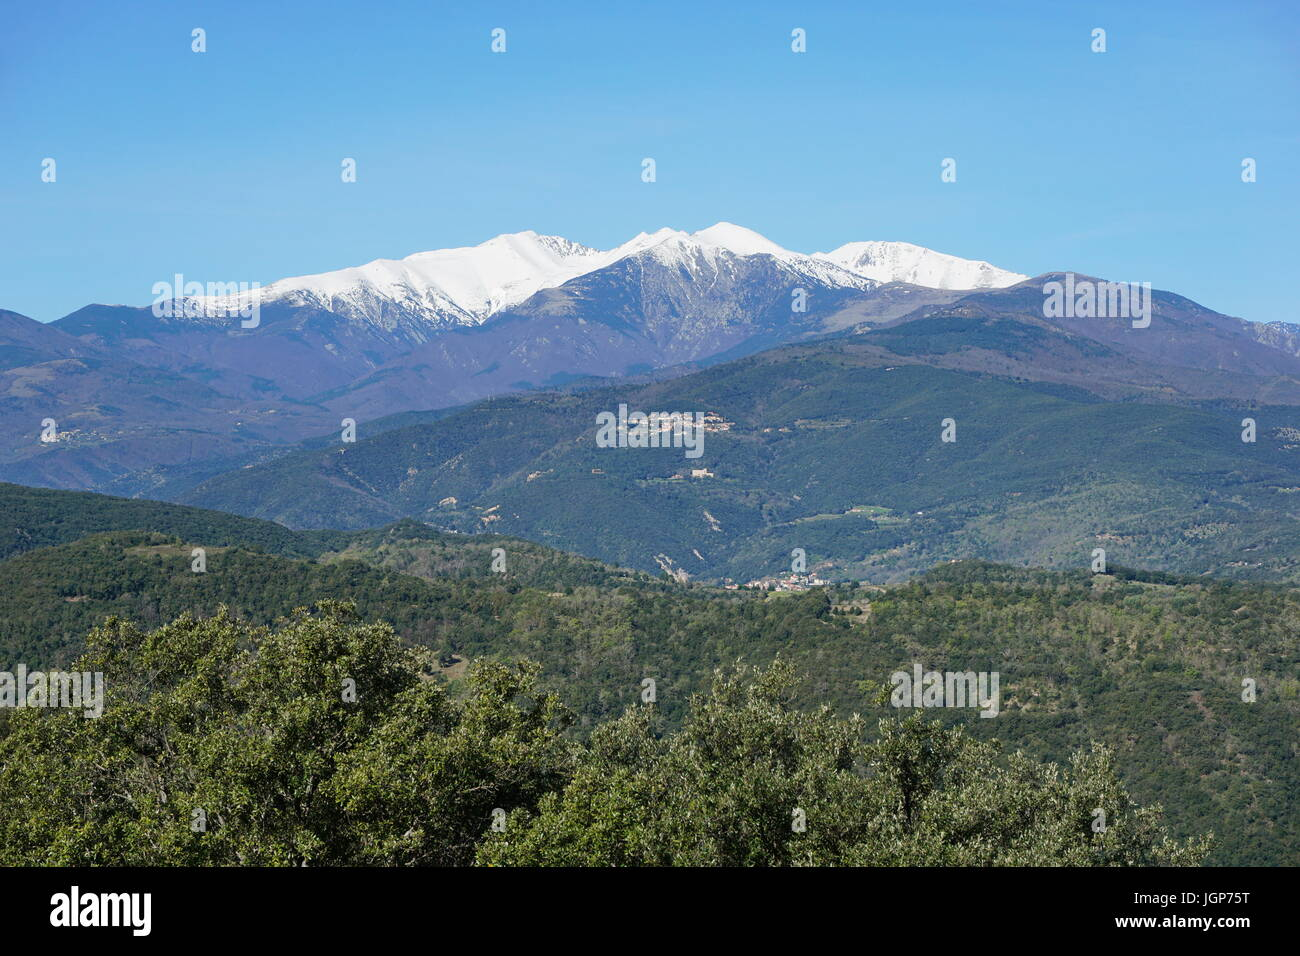 Mountain landscape, the Canigou located in the Pyrenees of southern France, Pyrenees Orientales - Stock Image